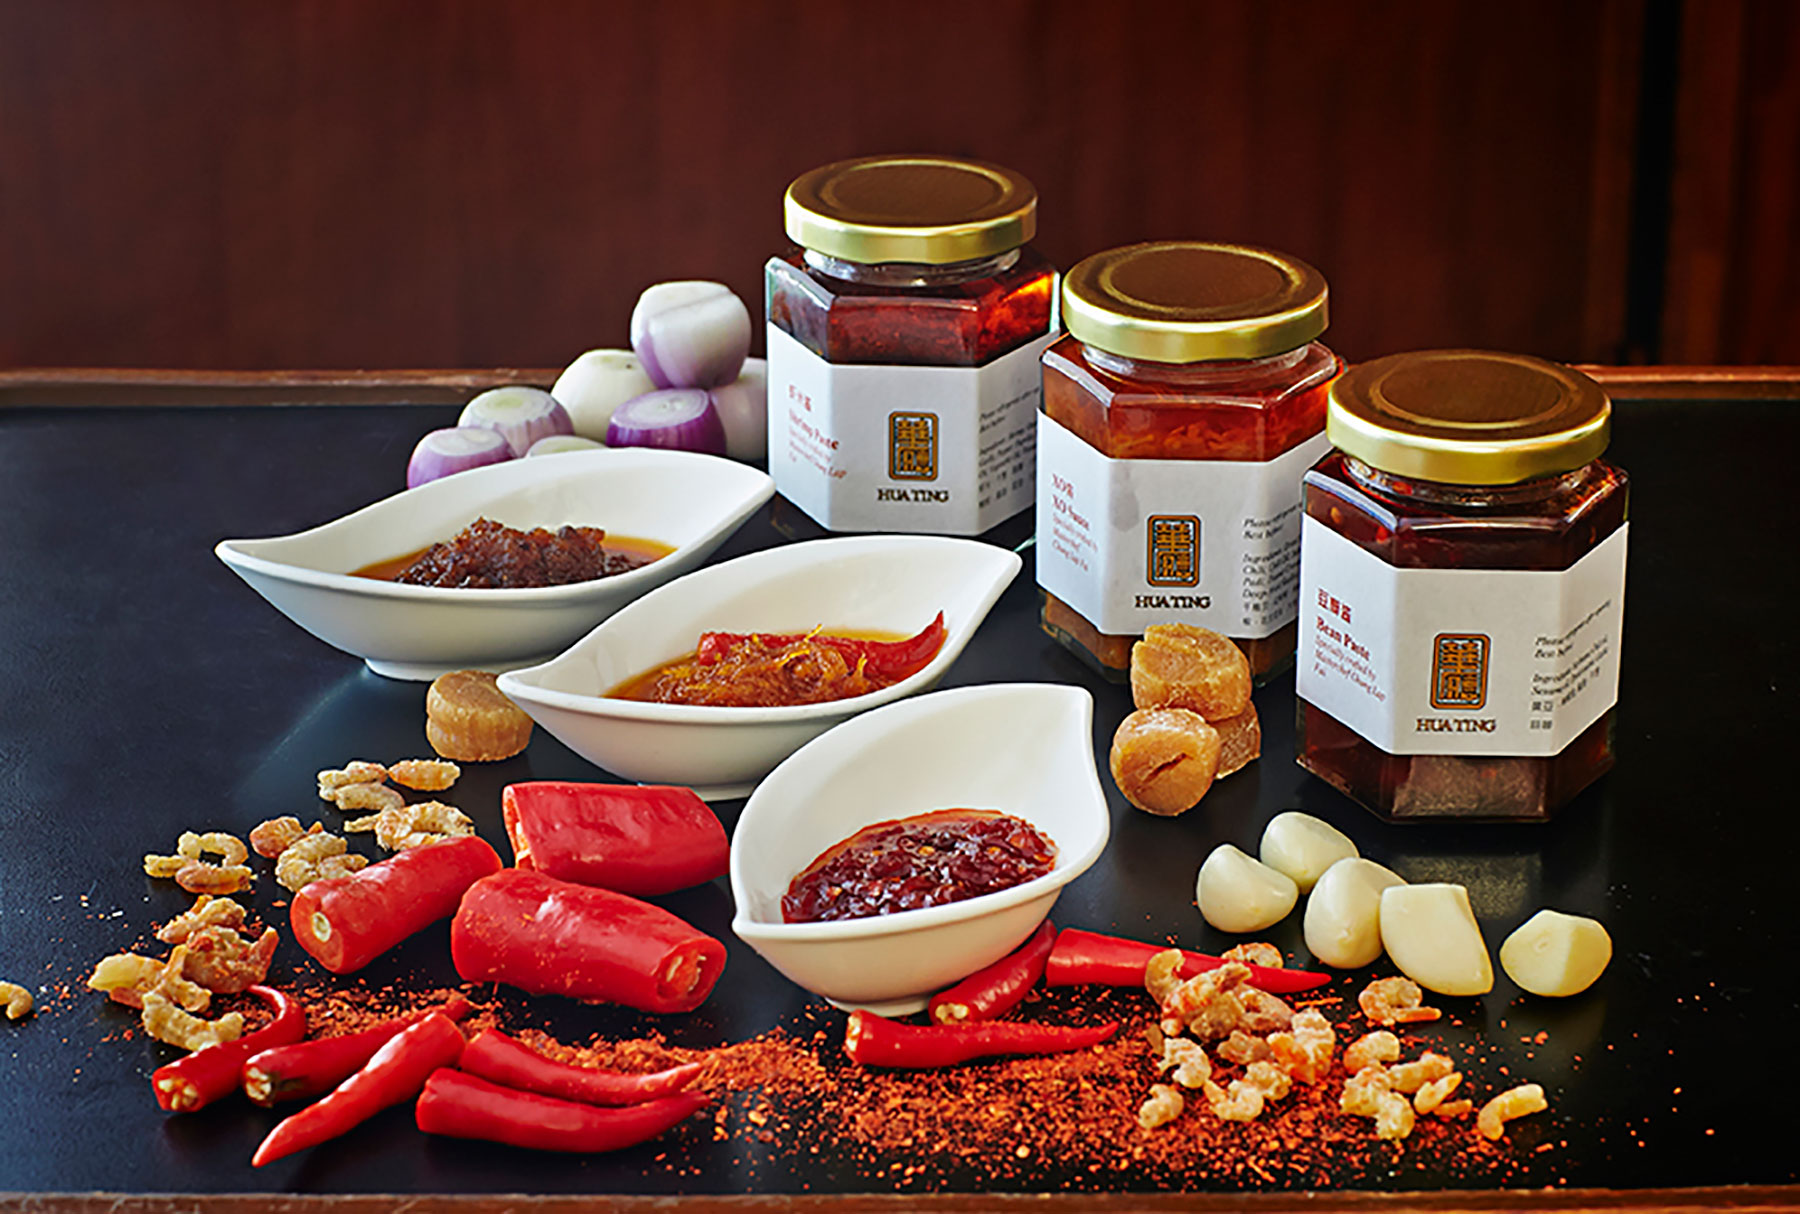 Orchard-Hotel-Singapore_Hua-Ting-Sauces